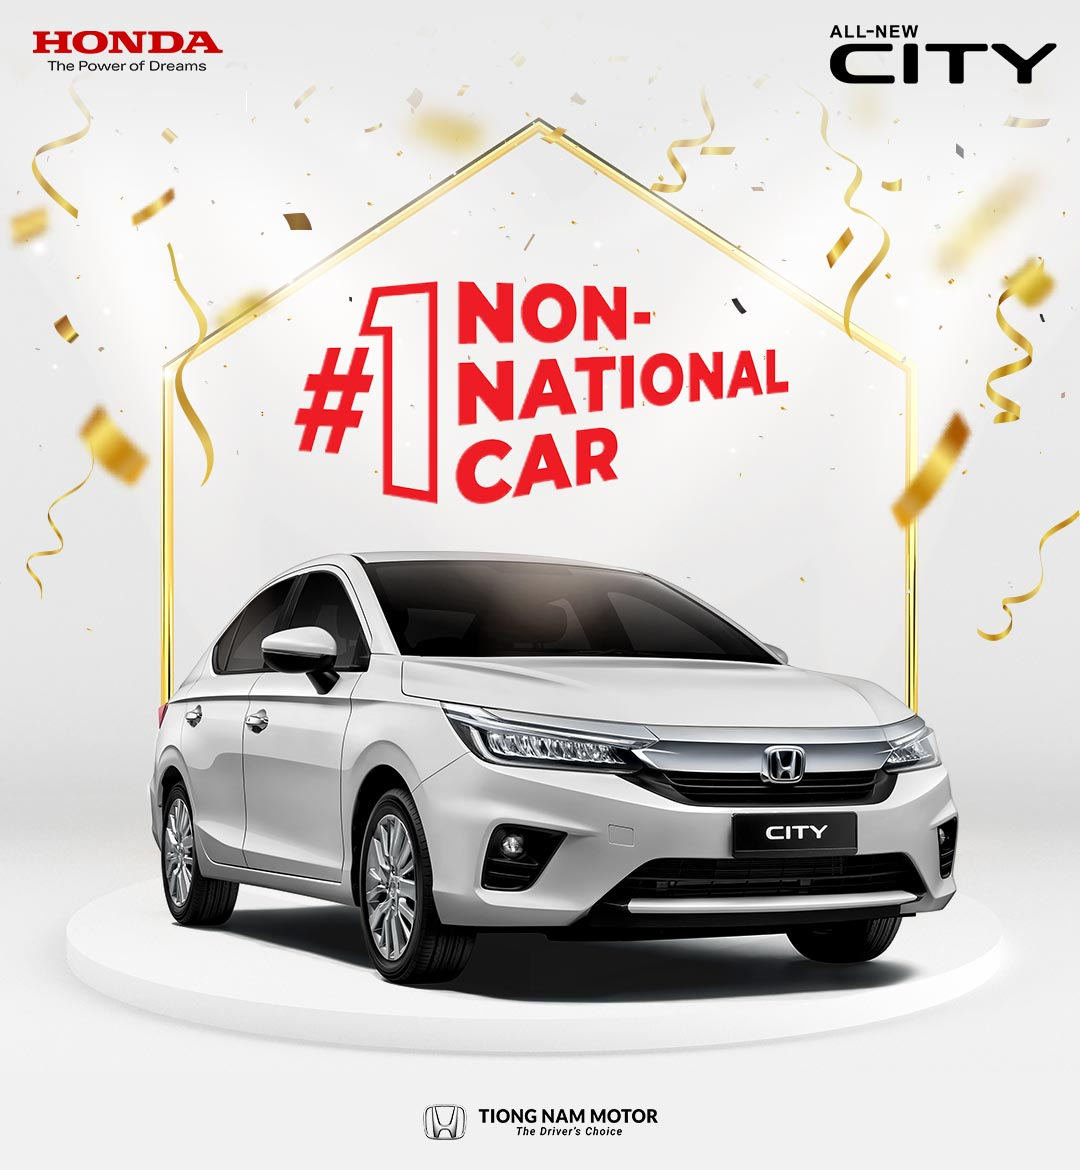 Honda Malaysia Maintains Its Undisputed No.1 Position In Non-National Segment¹ For Six Consecutive Years